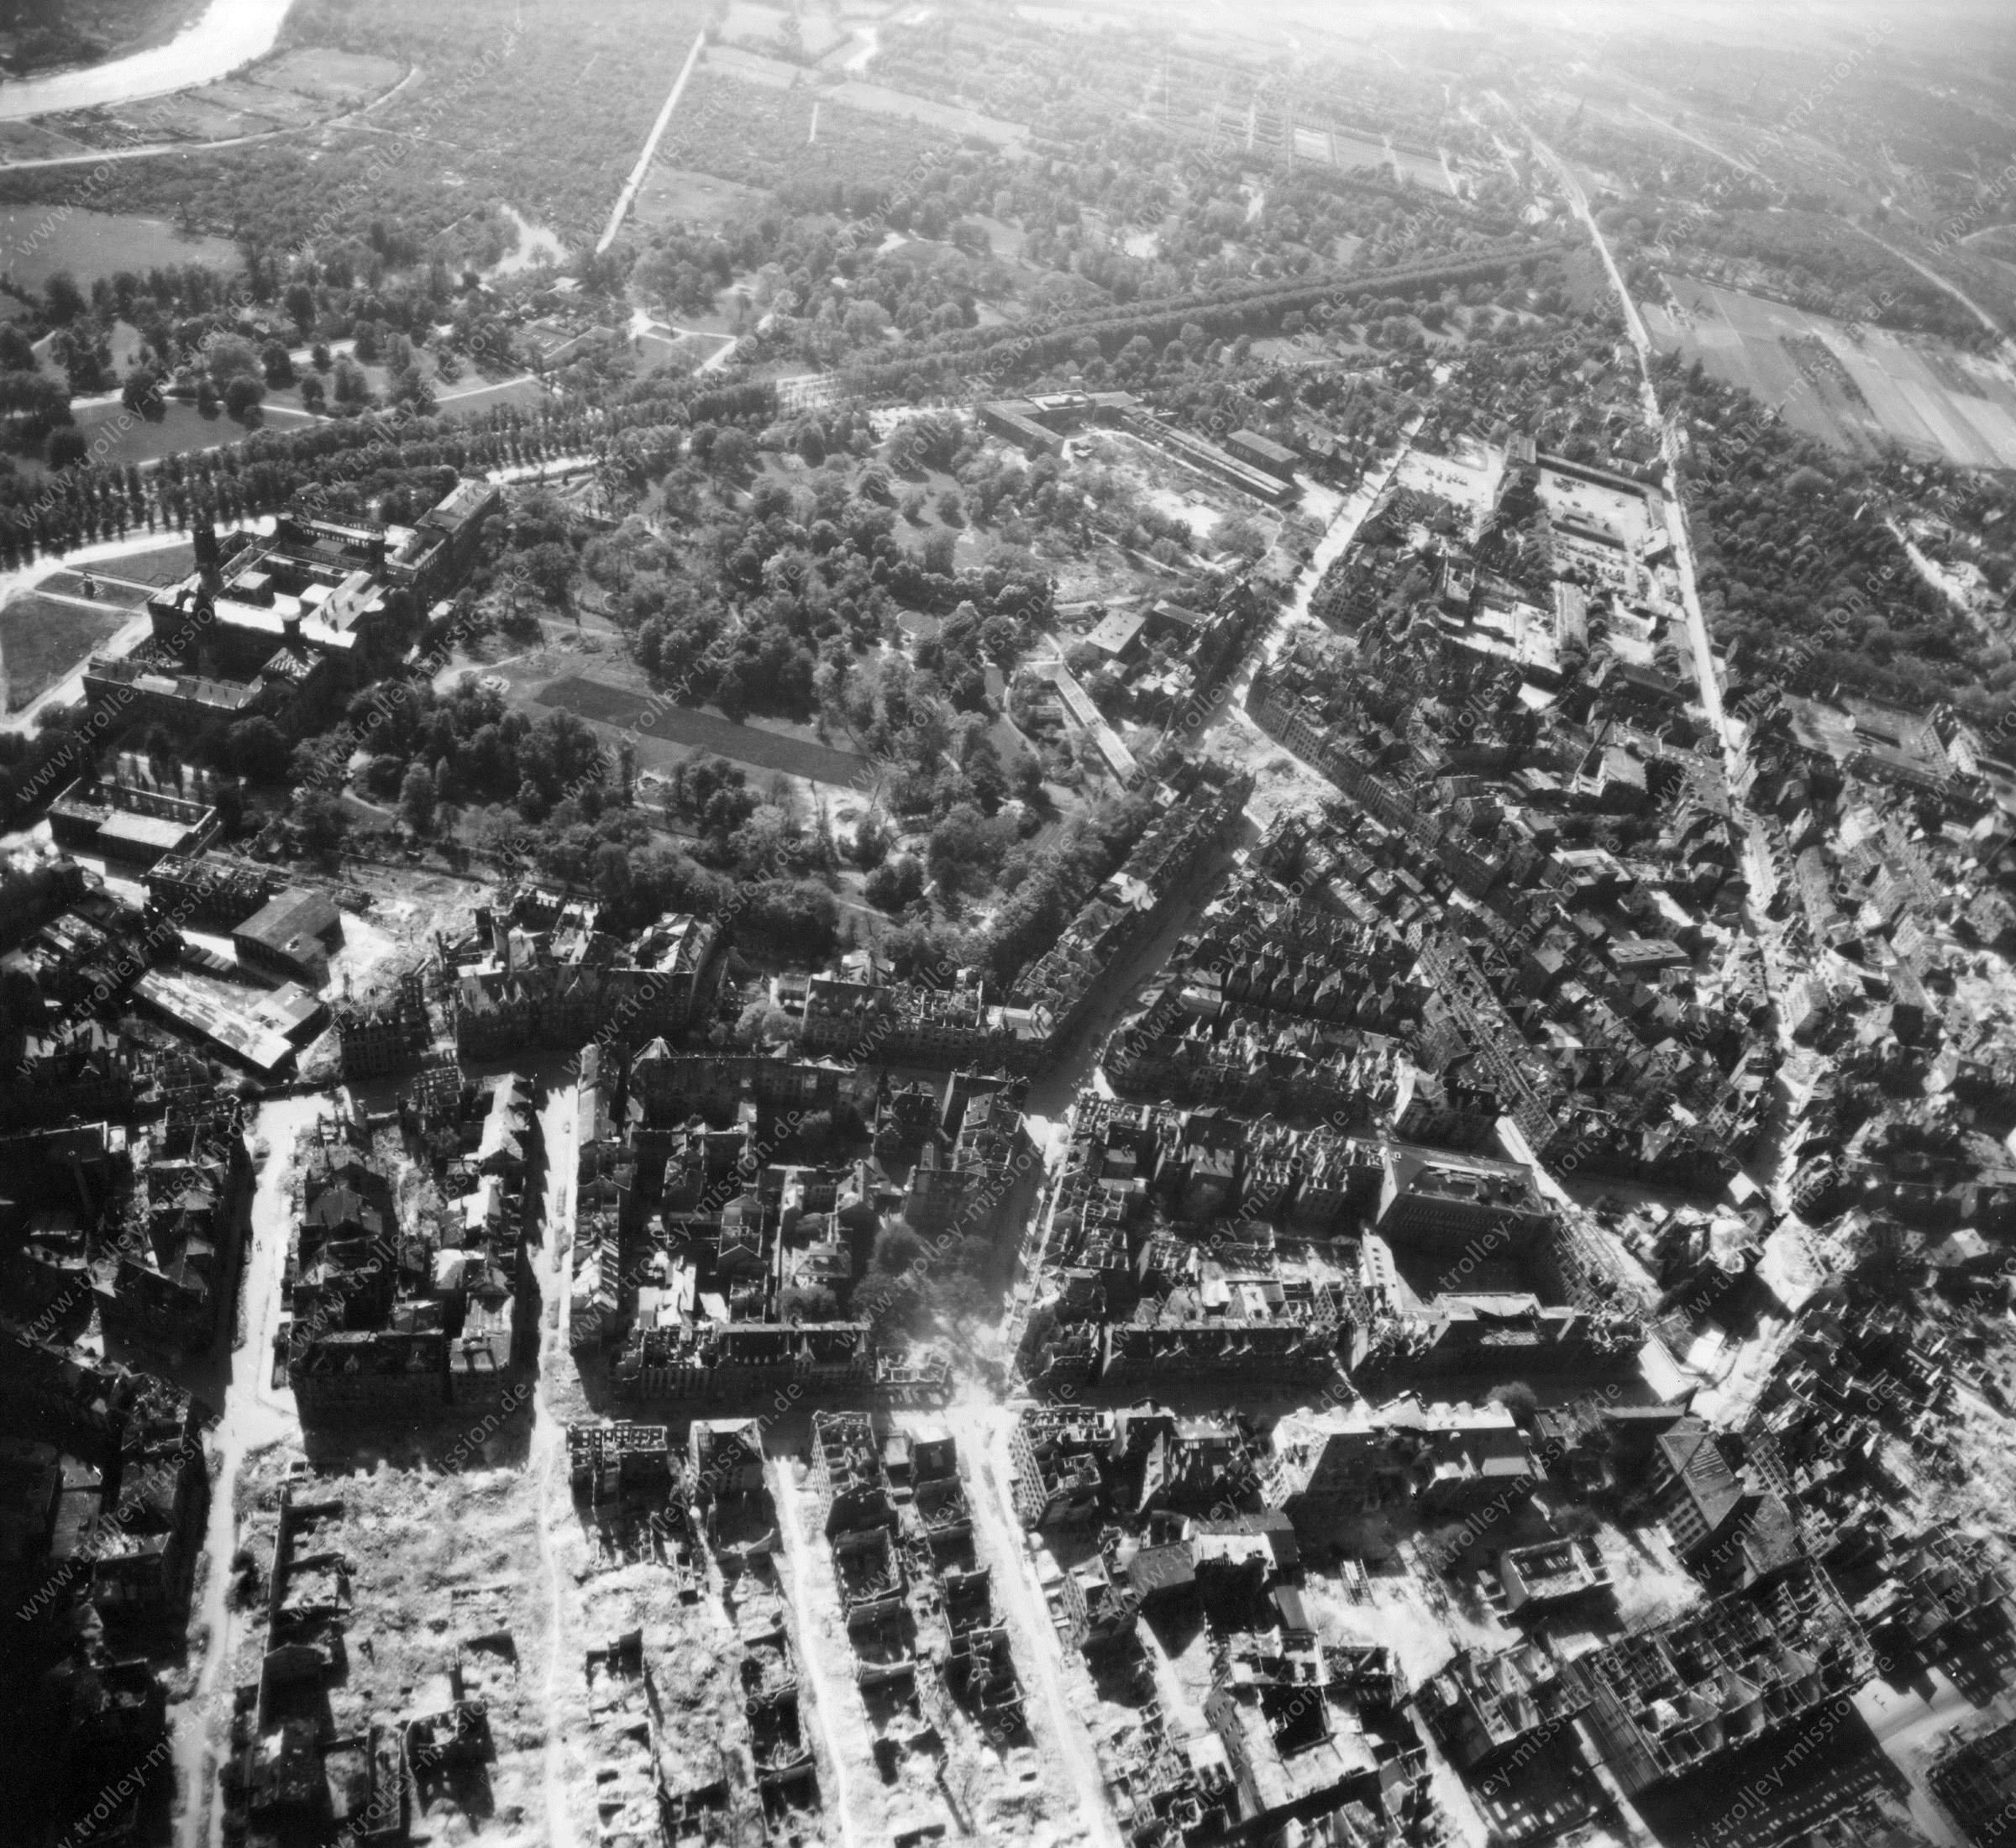 Hanover from above: Aerial view after Allied air raids in World War II